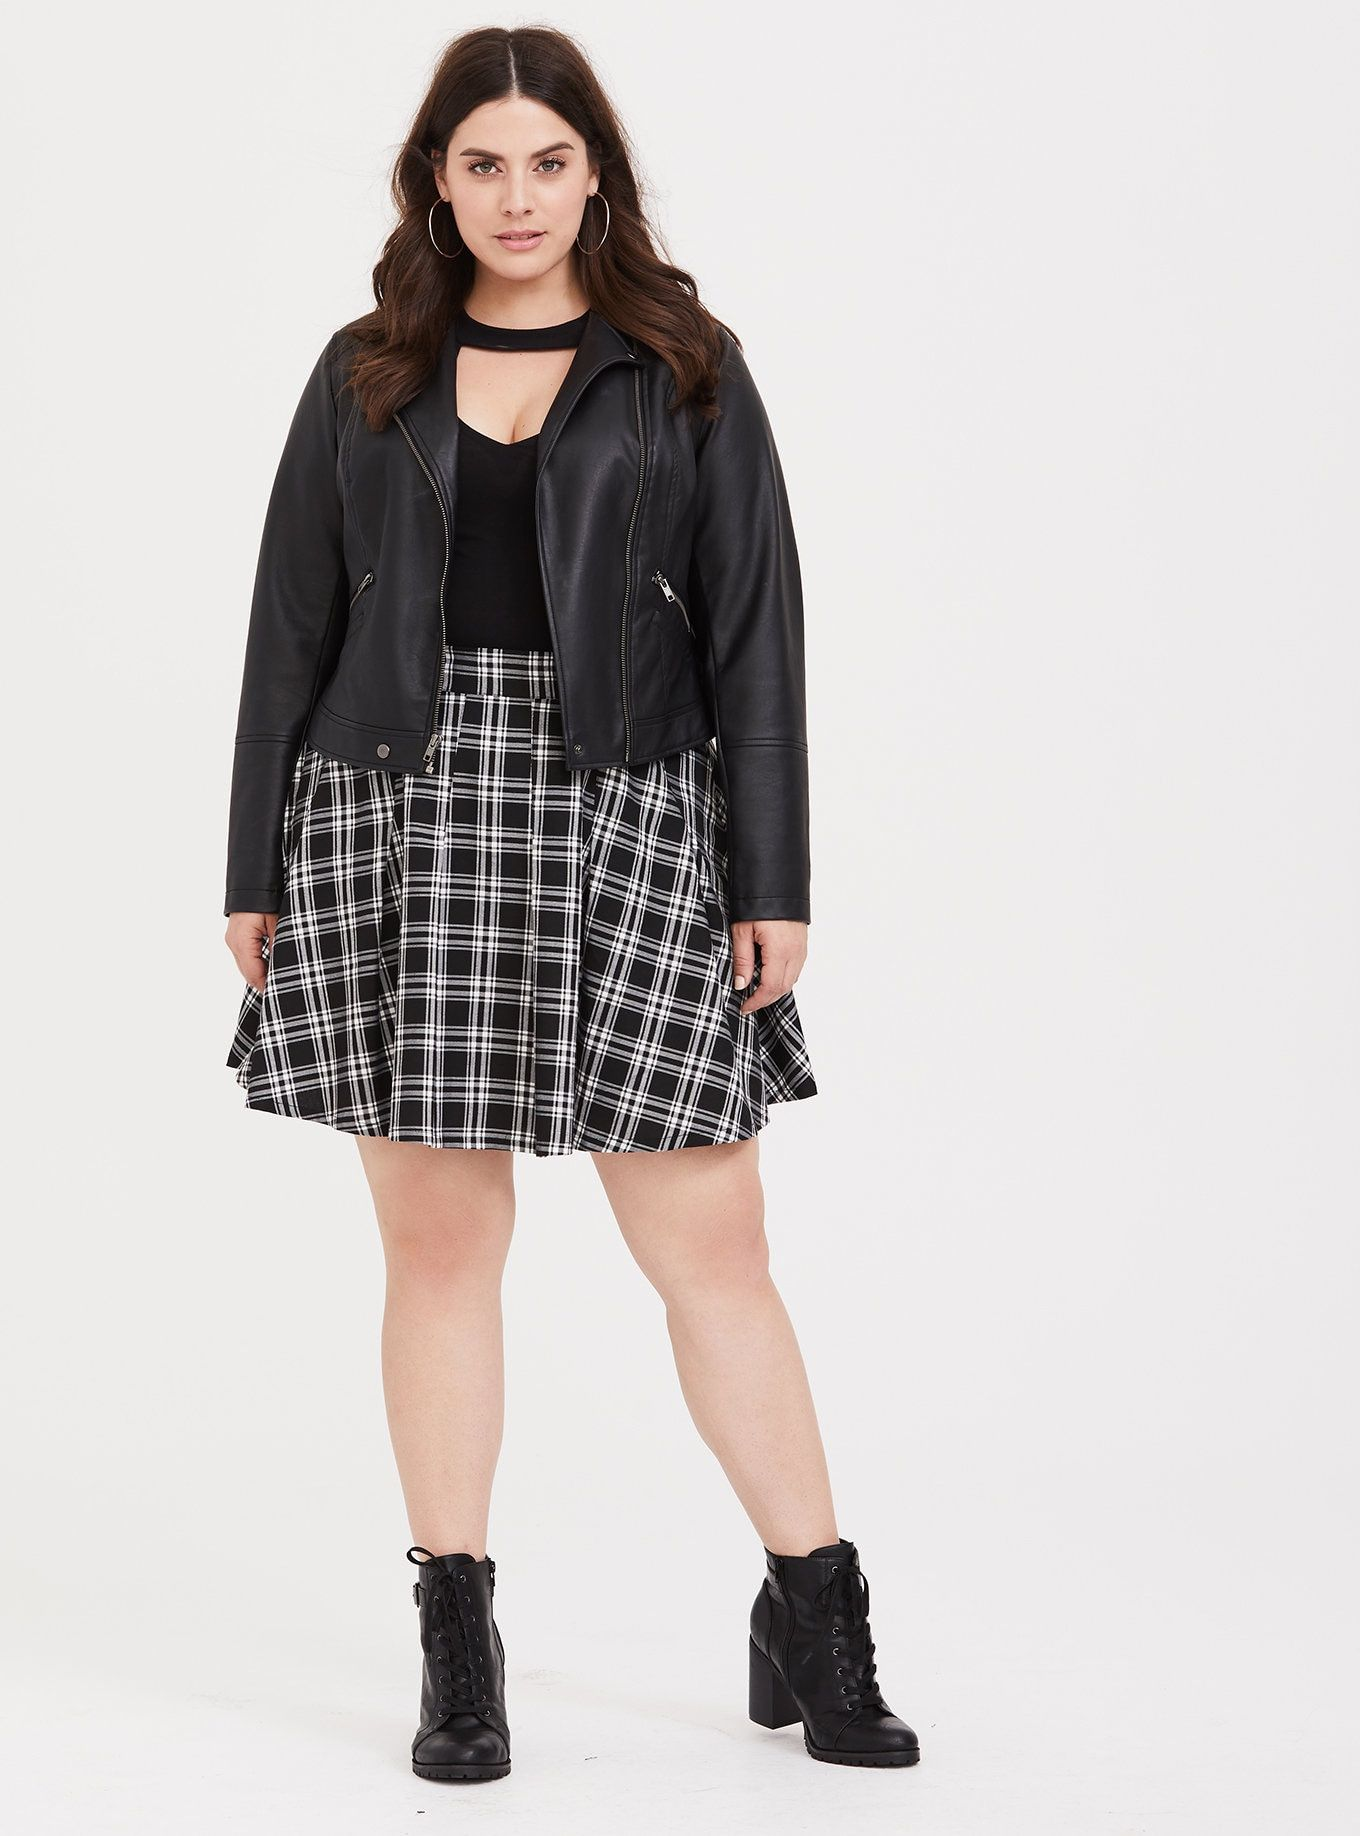 Black White Plaid Pleated Twill Skirt Plus Size Outfits Plus Size Fall Outfit Plus Size Fashion For Women